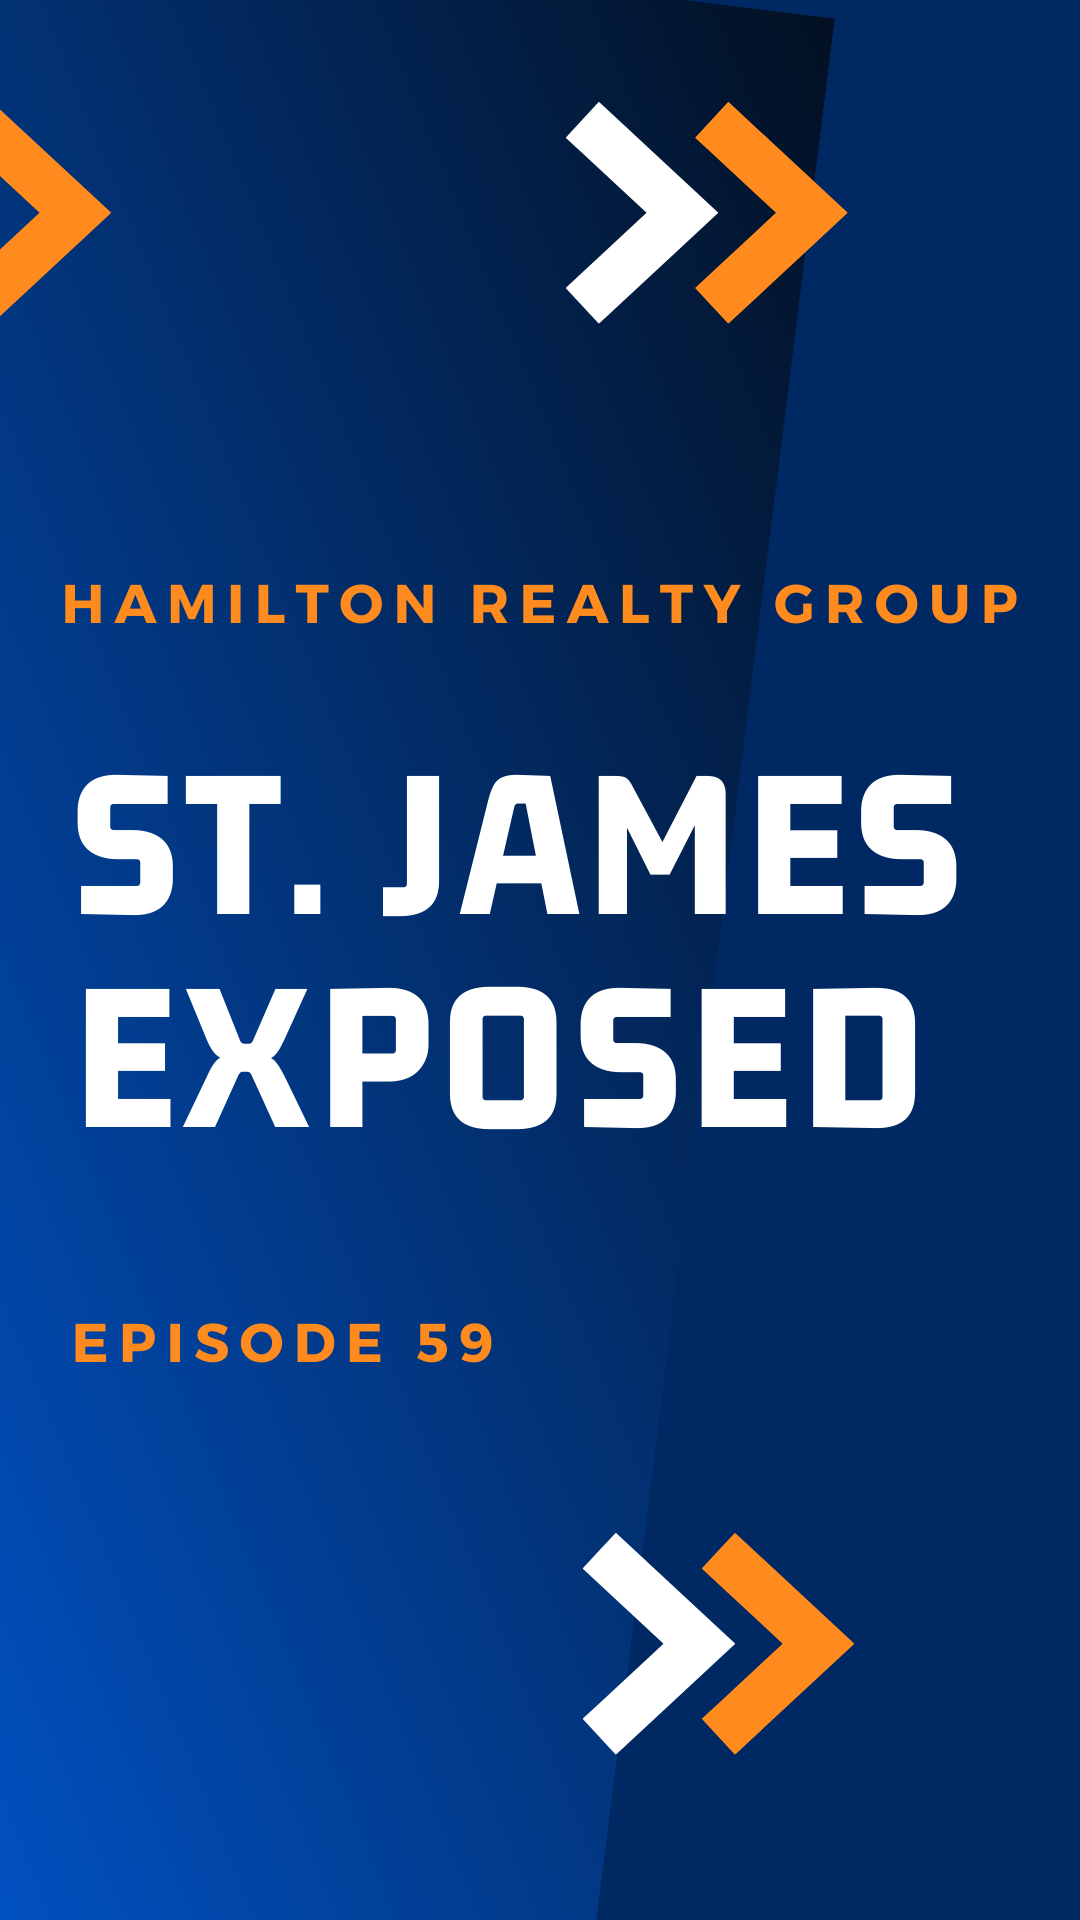 St. James Exposed: Episode 59